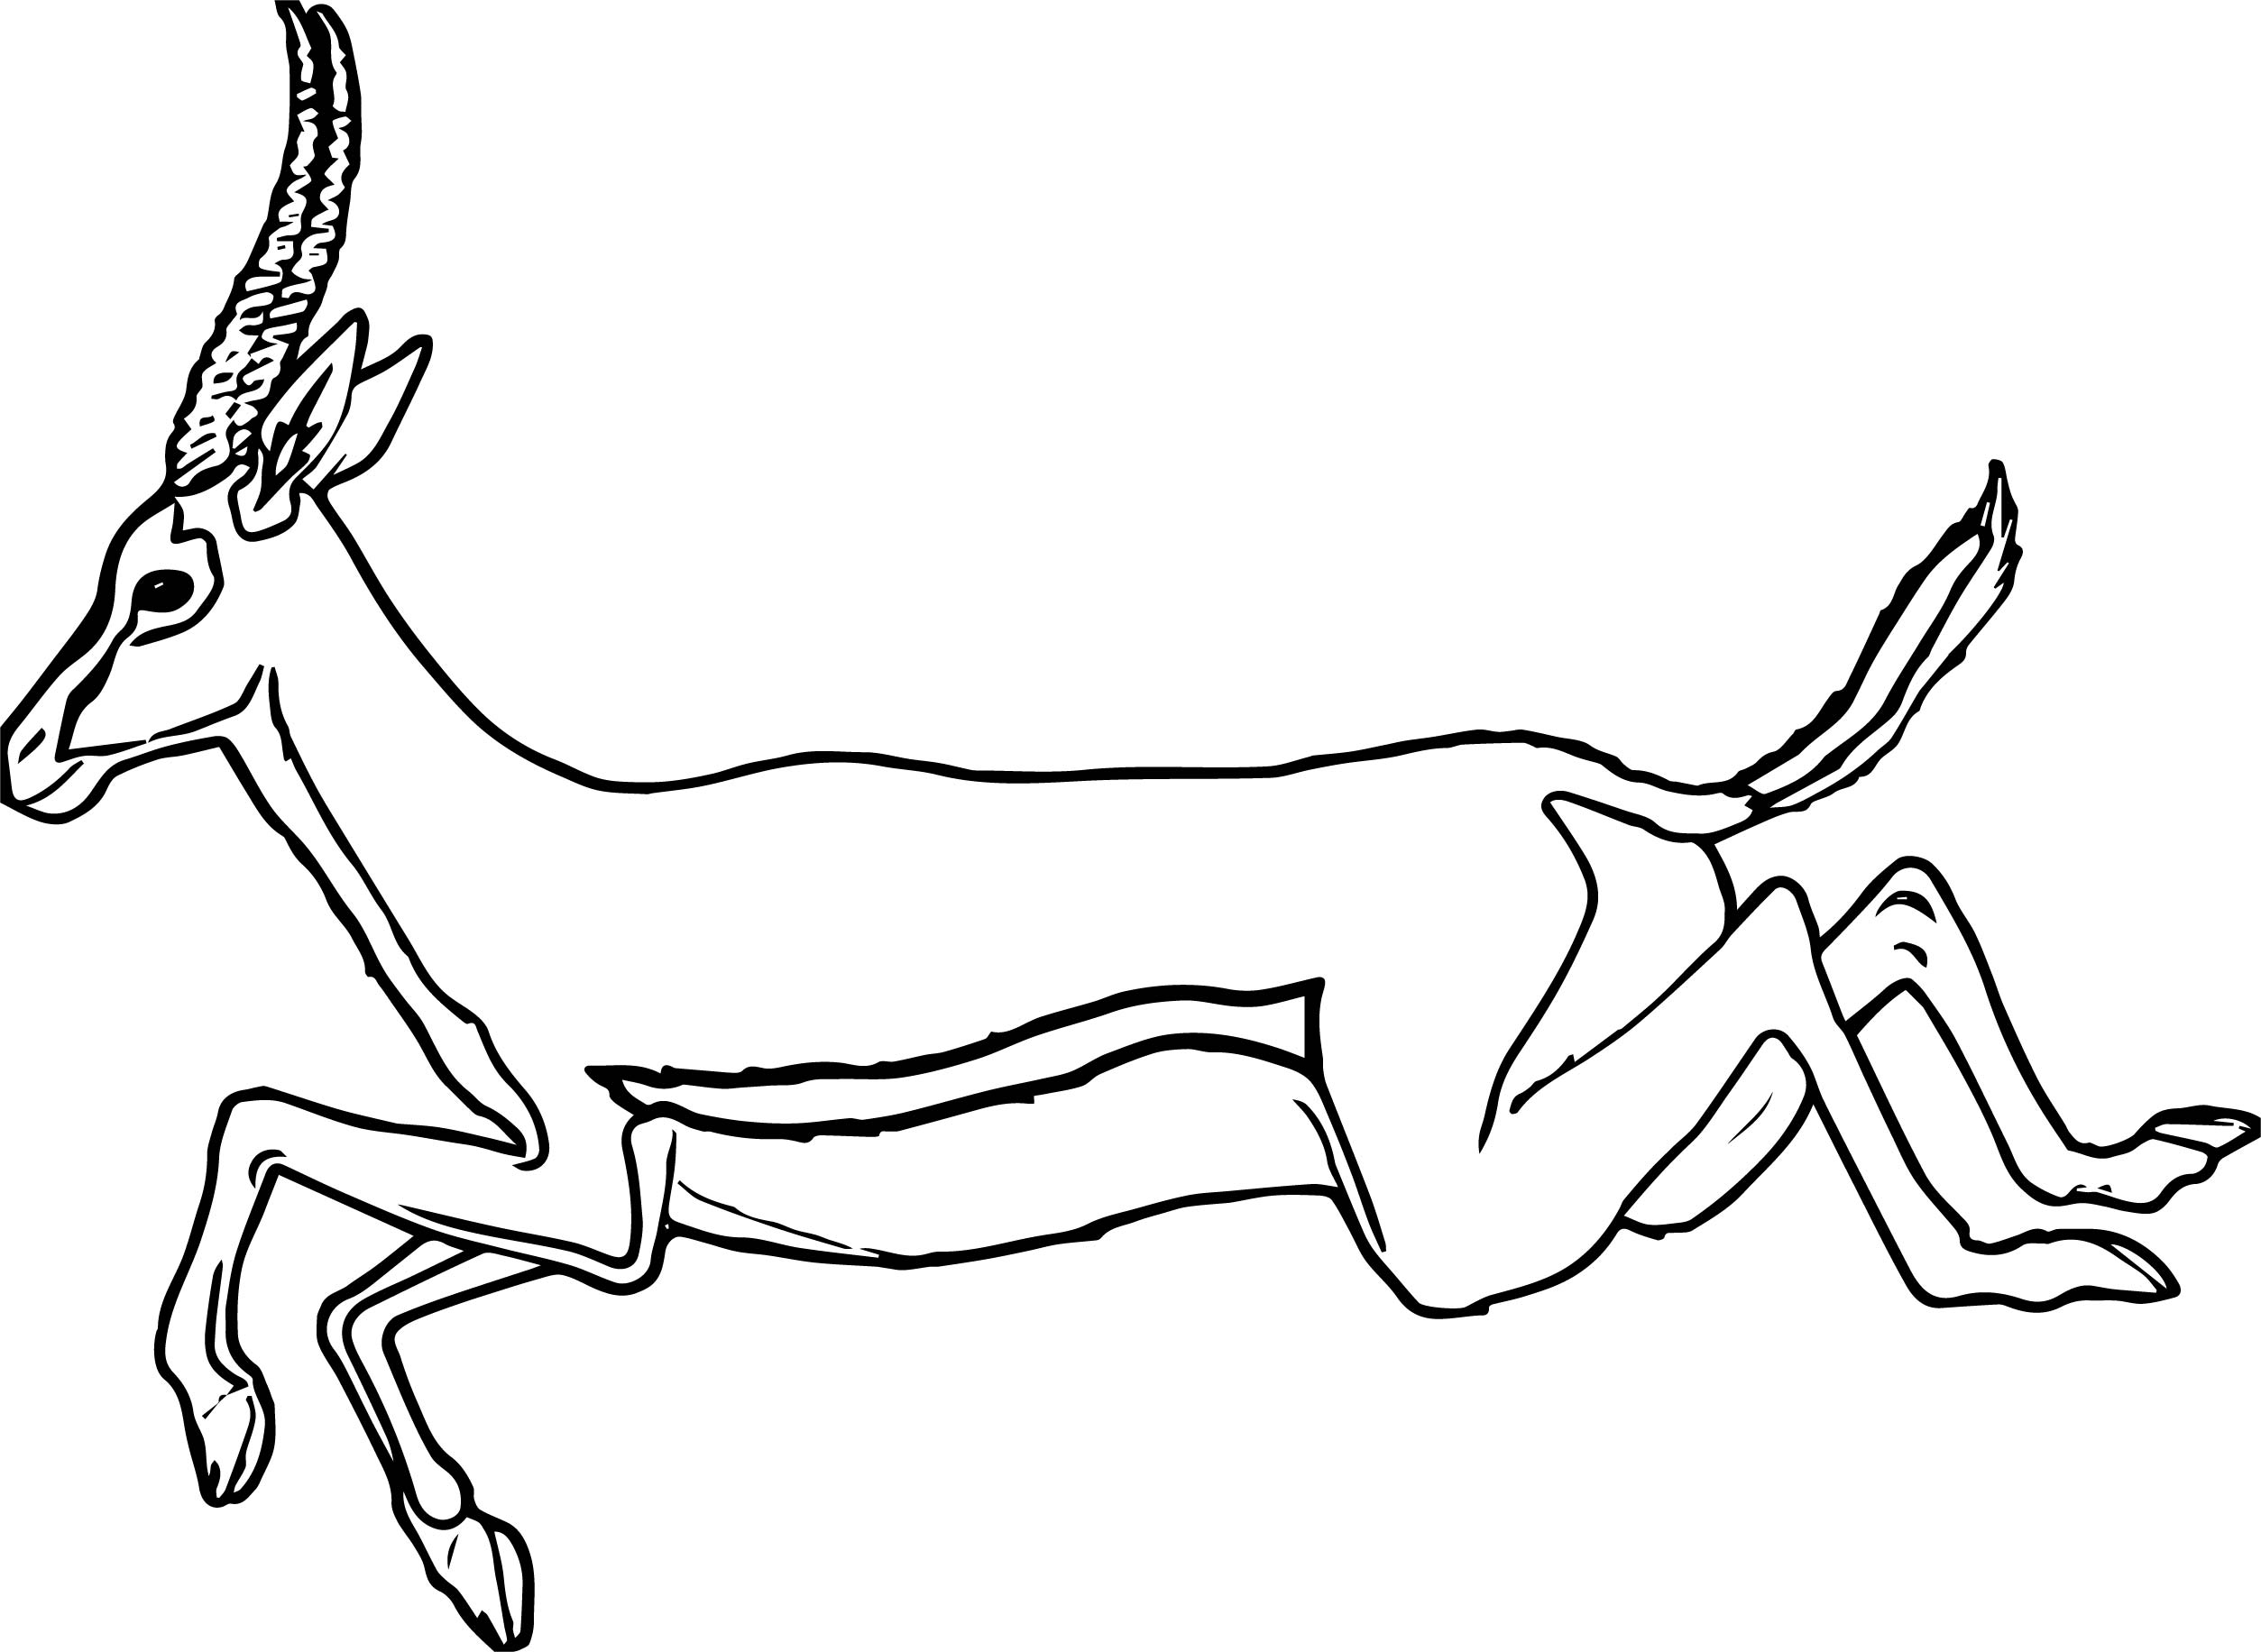 Leaping Antelope Coloring Page